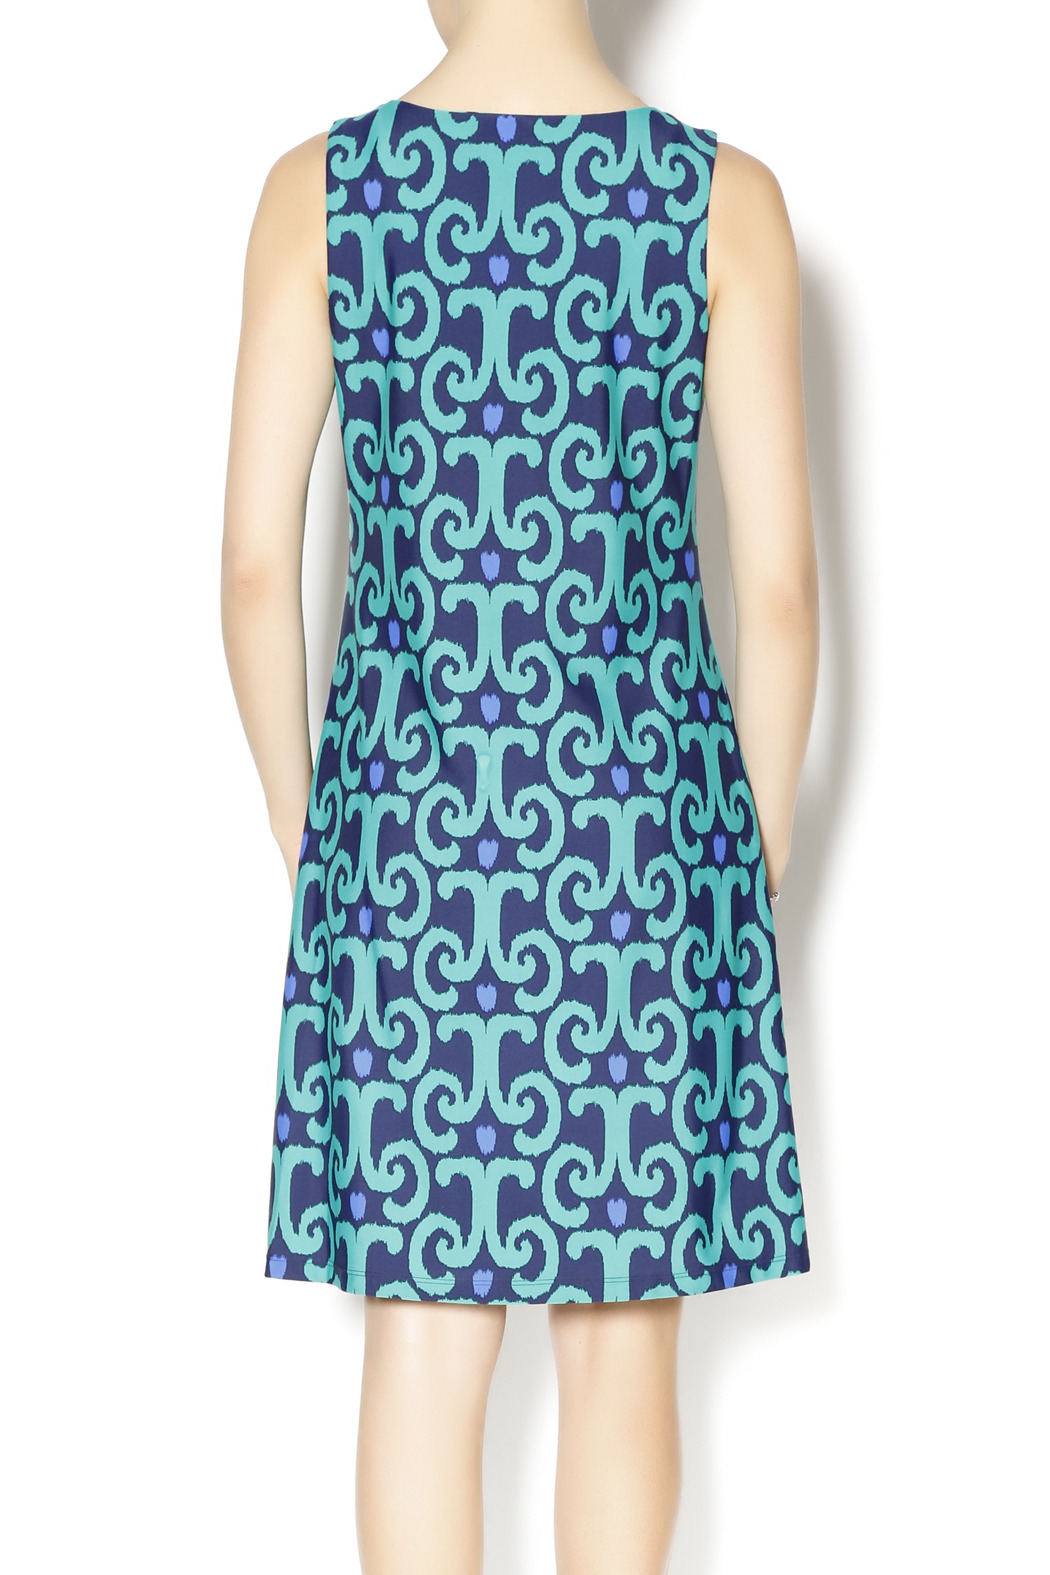 Jude connally beth ikat dress from texas by christy39s for Ikat fabric dress